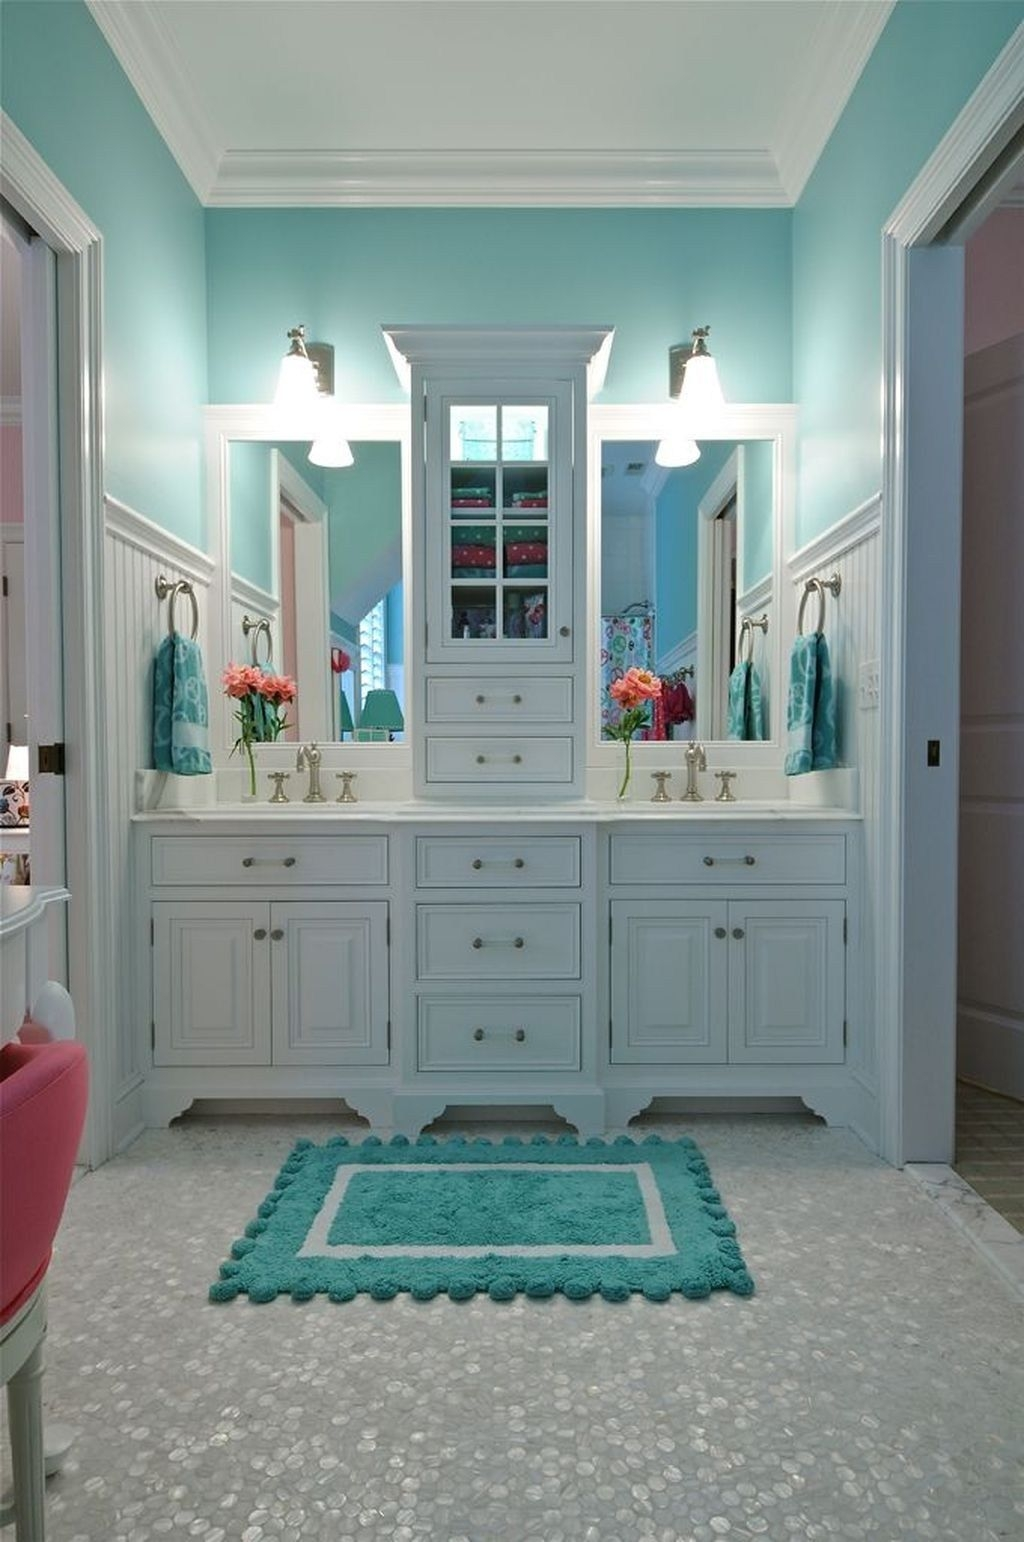 36 Cool Turquoise Home Decor Ideas Digsdigs 1